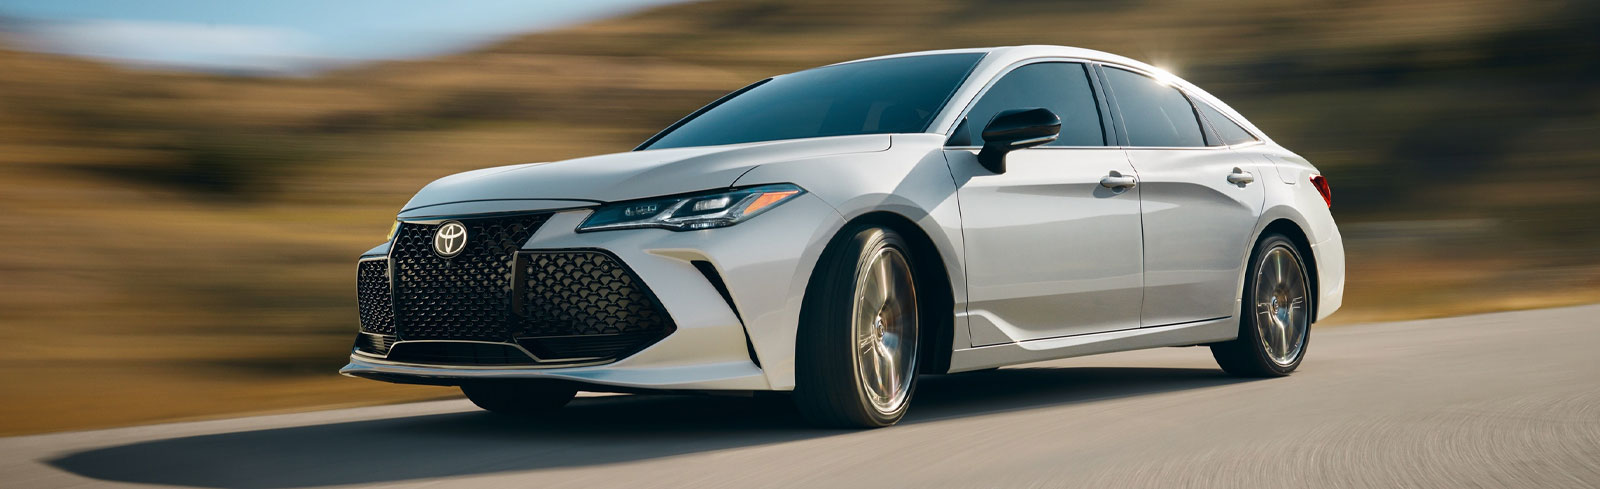 2020 Toyota Avalon Sedan in Cleveland, near Cleveland Heights, OH